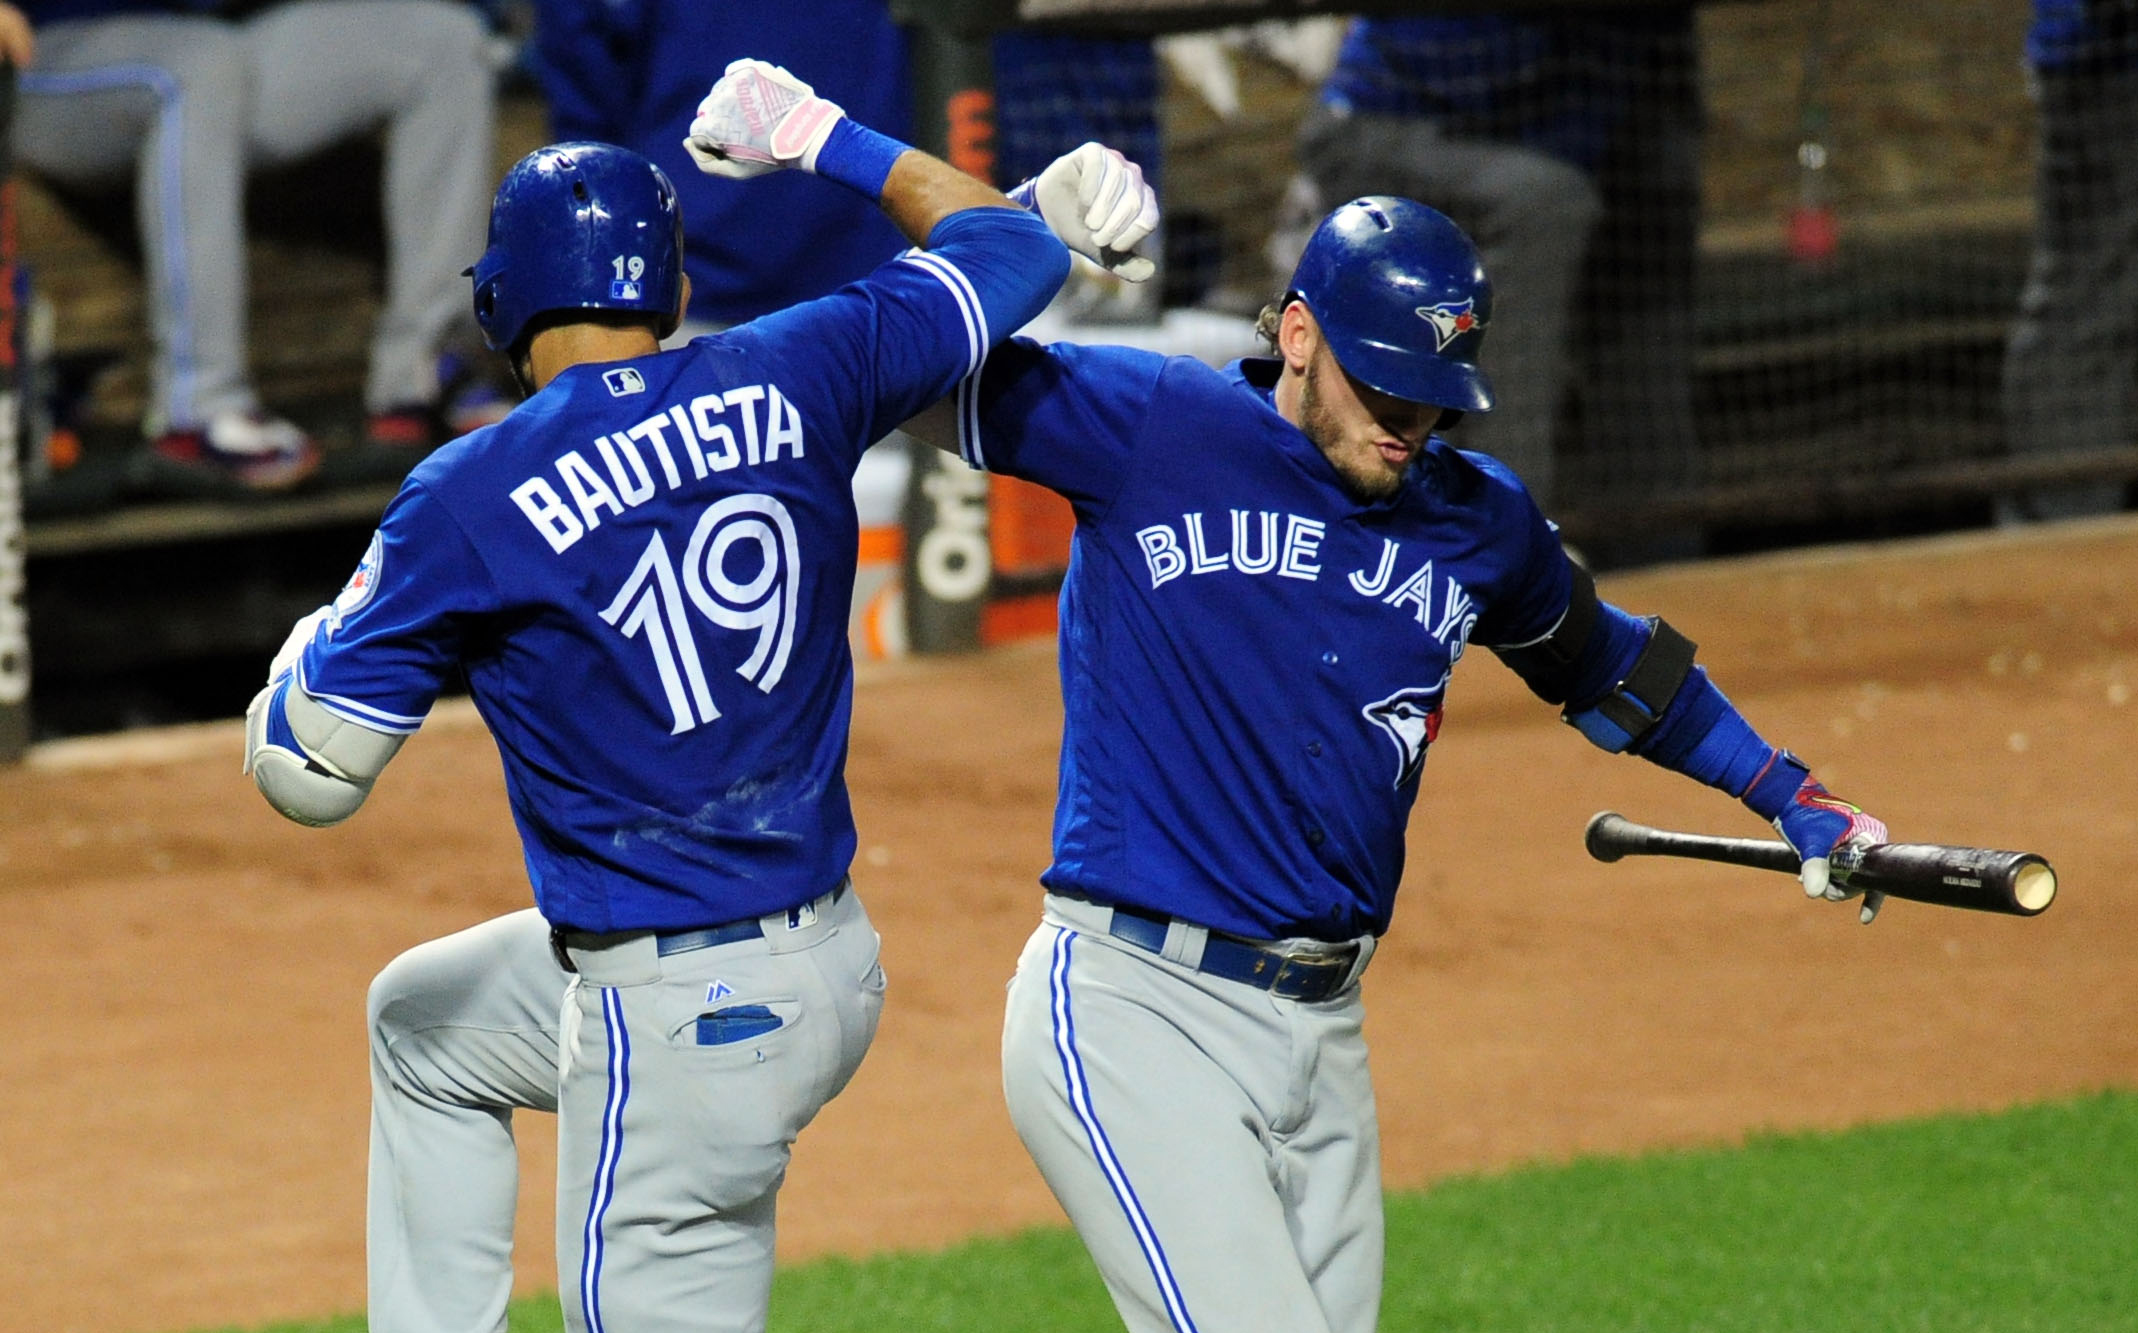 9506739-mlb-toronto-blue-jays-at-baltimore-orioles